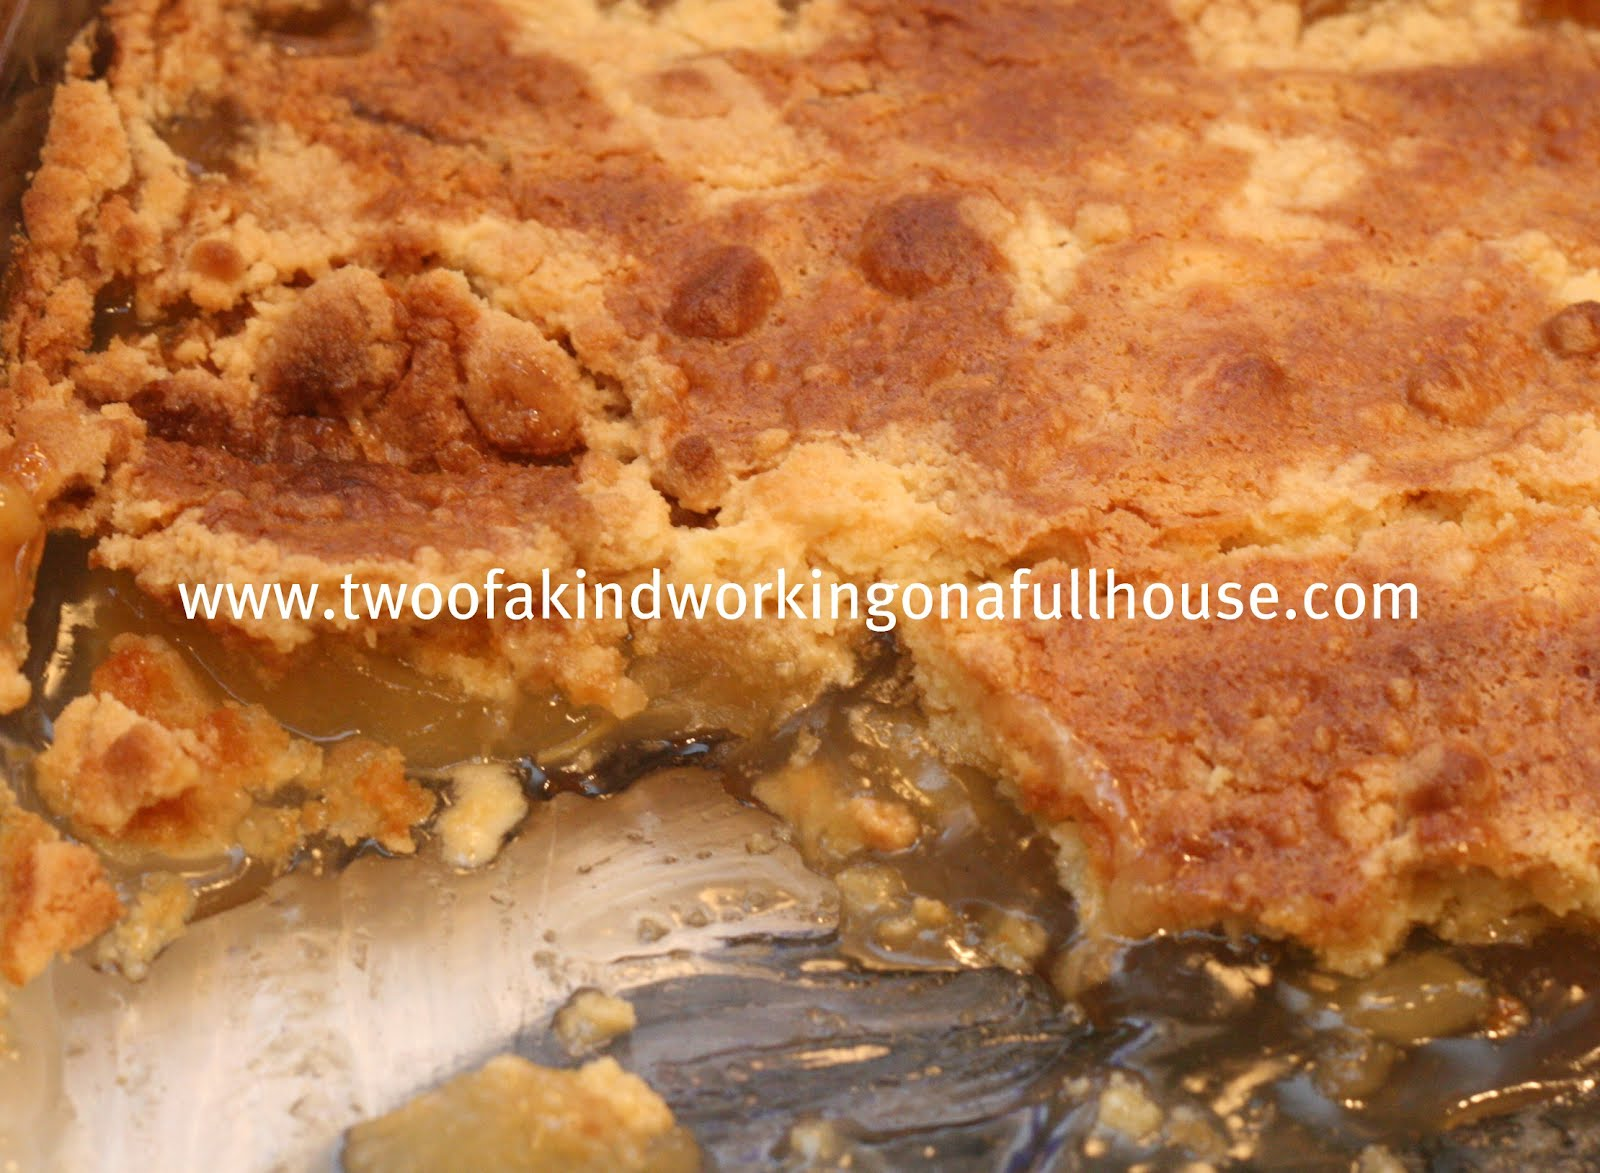 ... be called but i think its more of an apple cobbler than apple pie